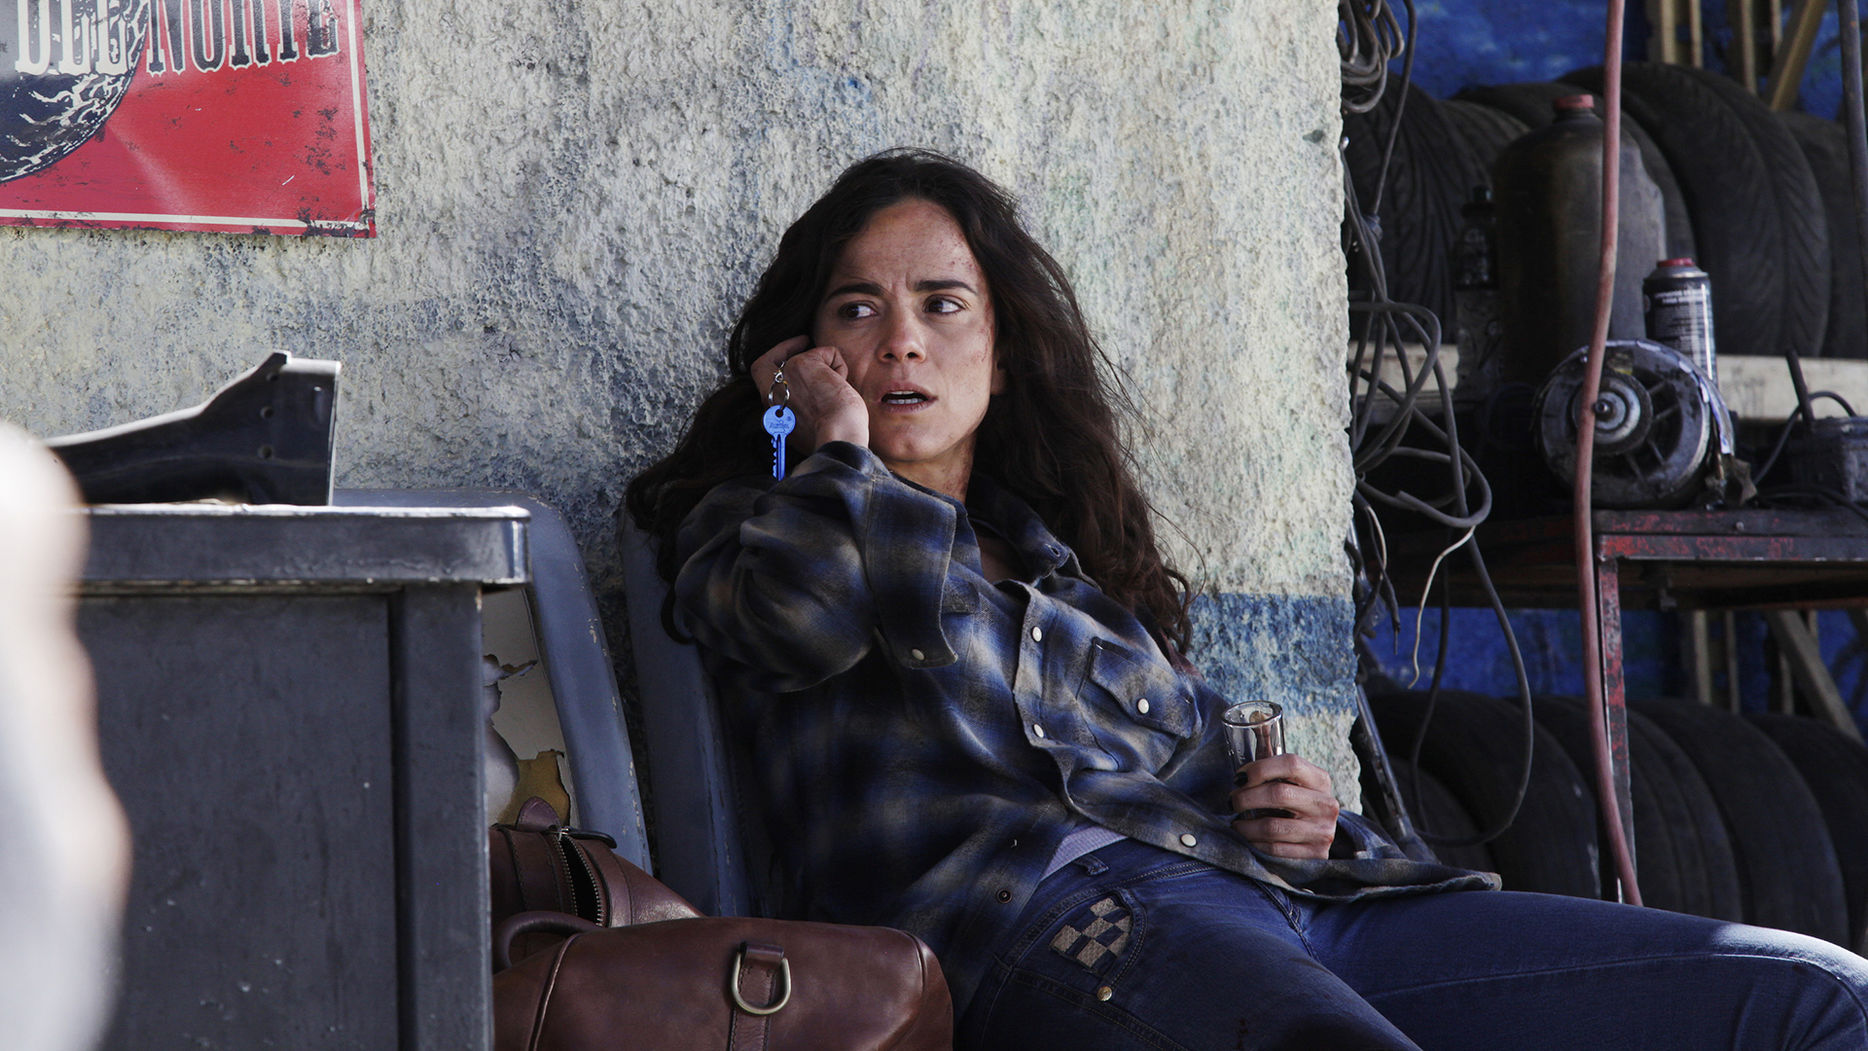 Alice Braga as Teresa Mendoza in Queen of the South Season 1 Episode 1 - v6.jpg